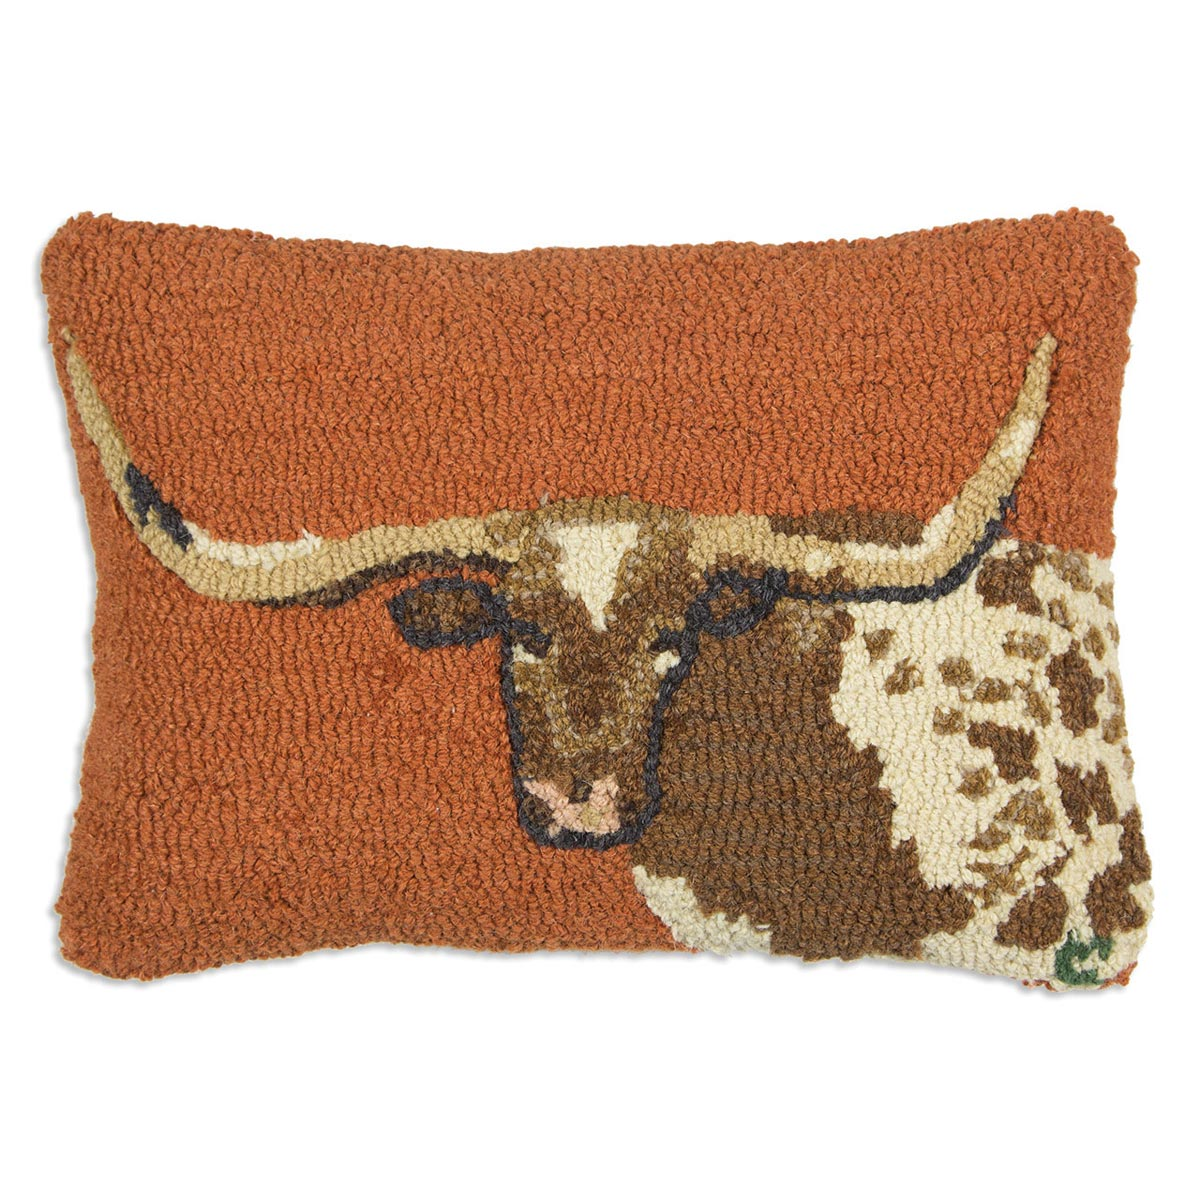 Longhorn Hooked Wool Pillow - 14 x 20